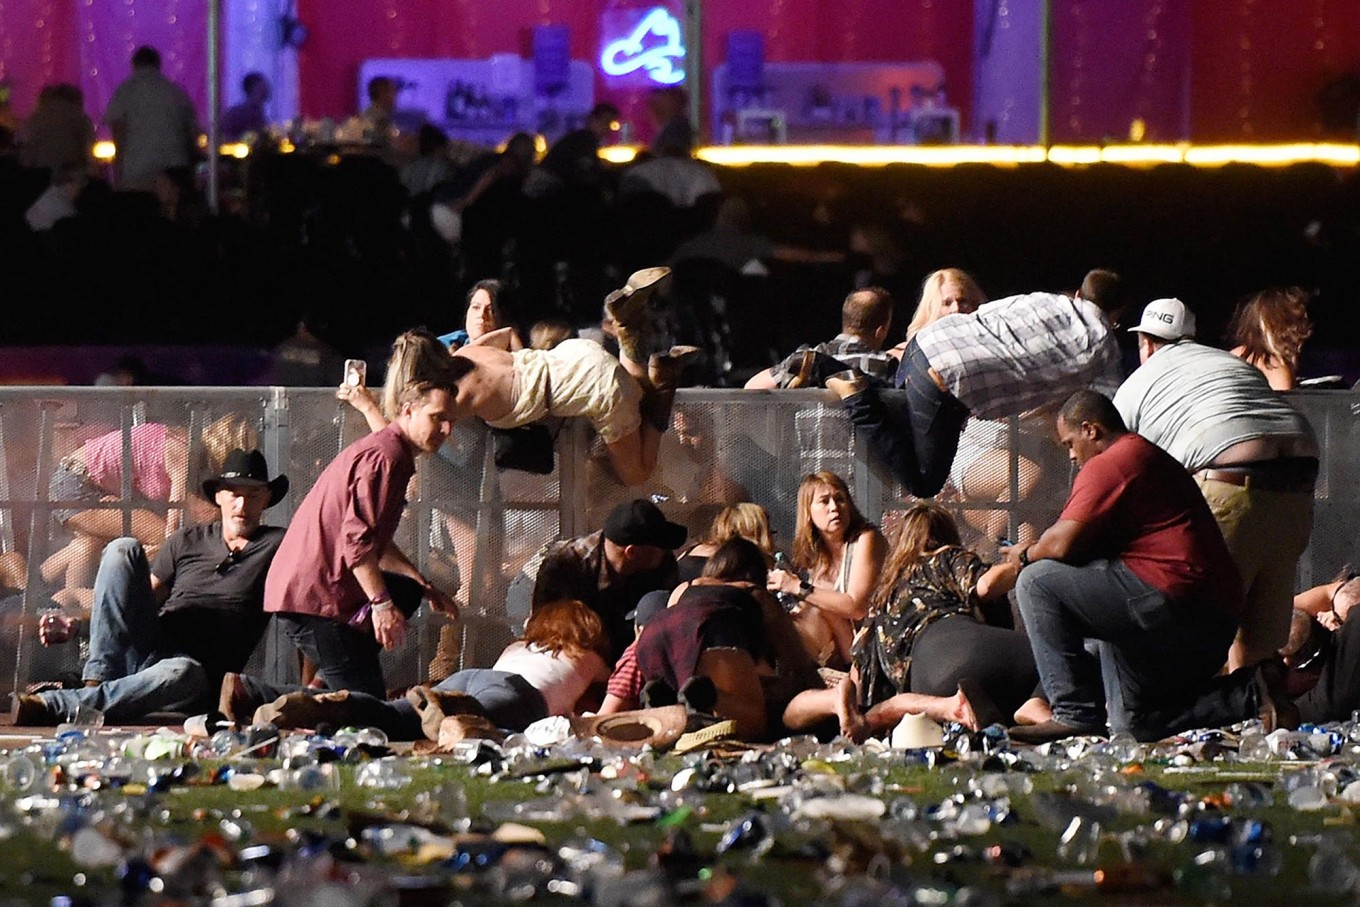 People scramble for shelter at the Route 91 Harvest country music festival after apparent gun fire was heard on October 1, 2017 in Las Vegas, Nevada. A gunman has opened fire on a music festival in Las Vegas, leaving at least 20 people dead and more than 100 injured. Police have confirmed that one suspect has been shot. The investigation is ongoing. AFP/Getty Images/David Becker